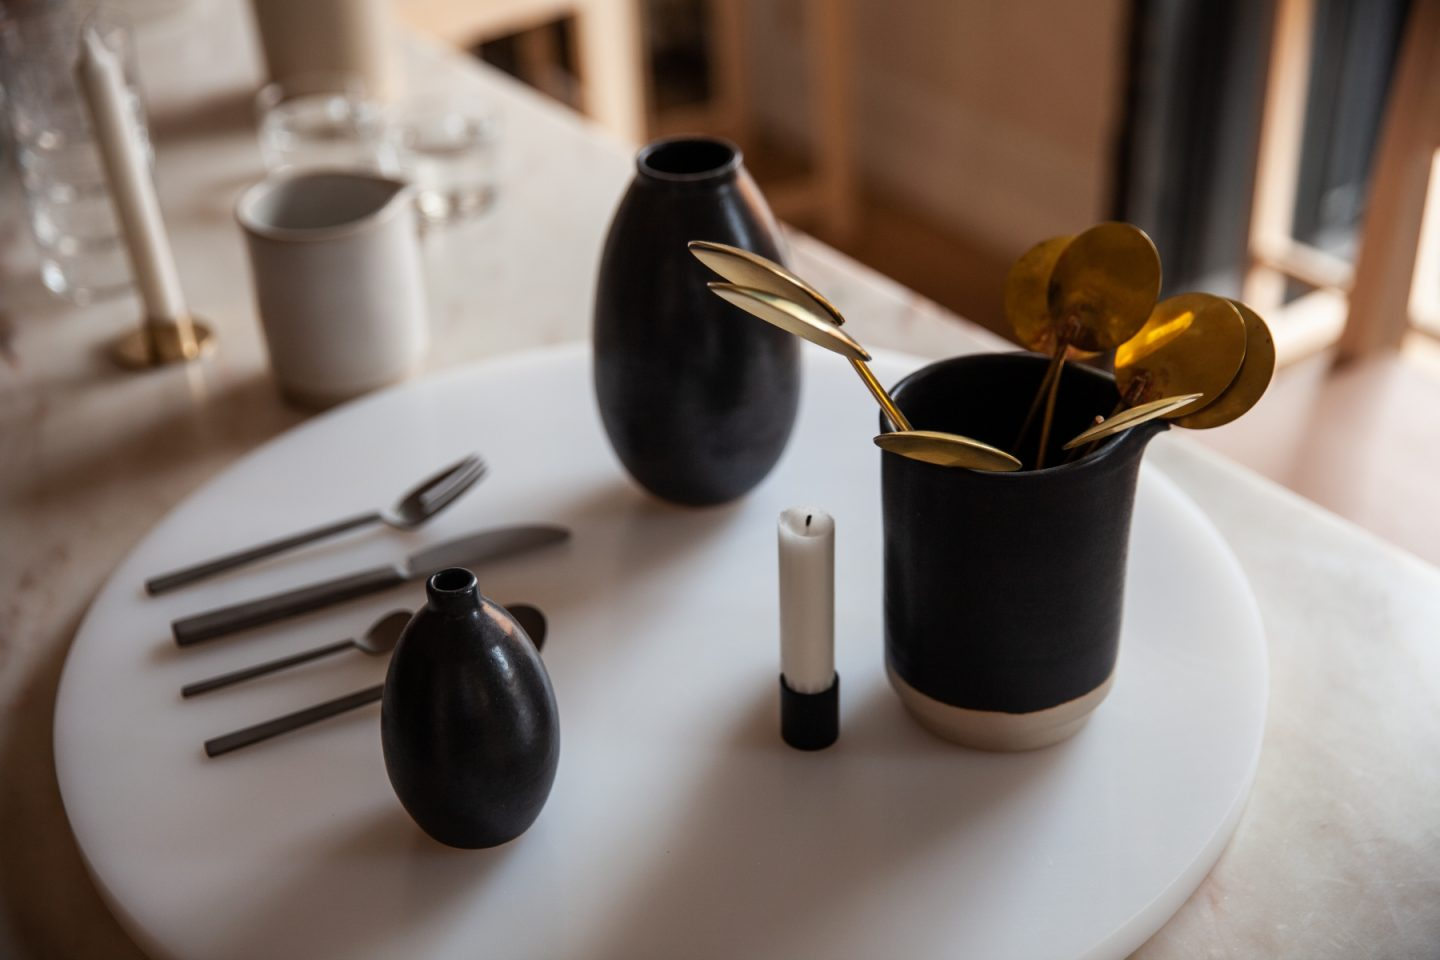 Copenhagen's 3 days of design event, Frama Showroom, gold spoons, Hello Peagreen